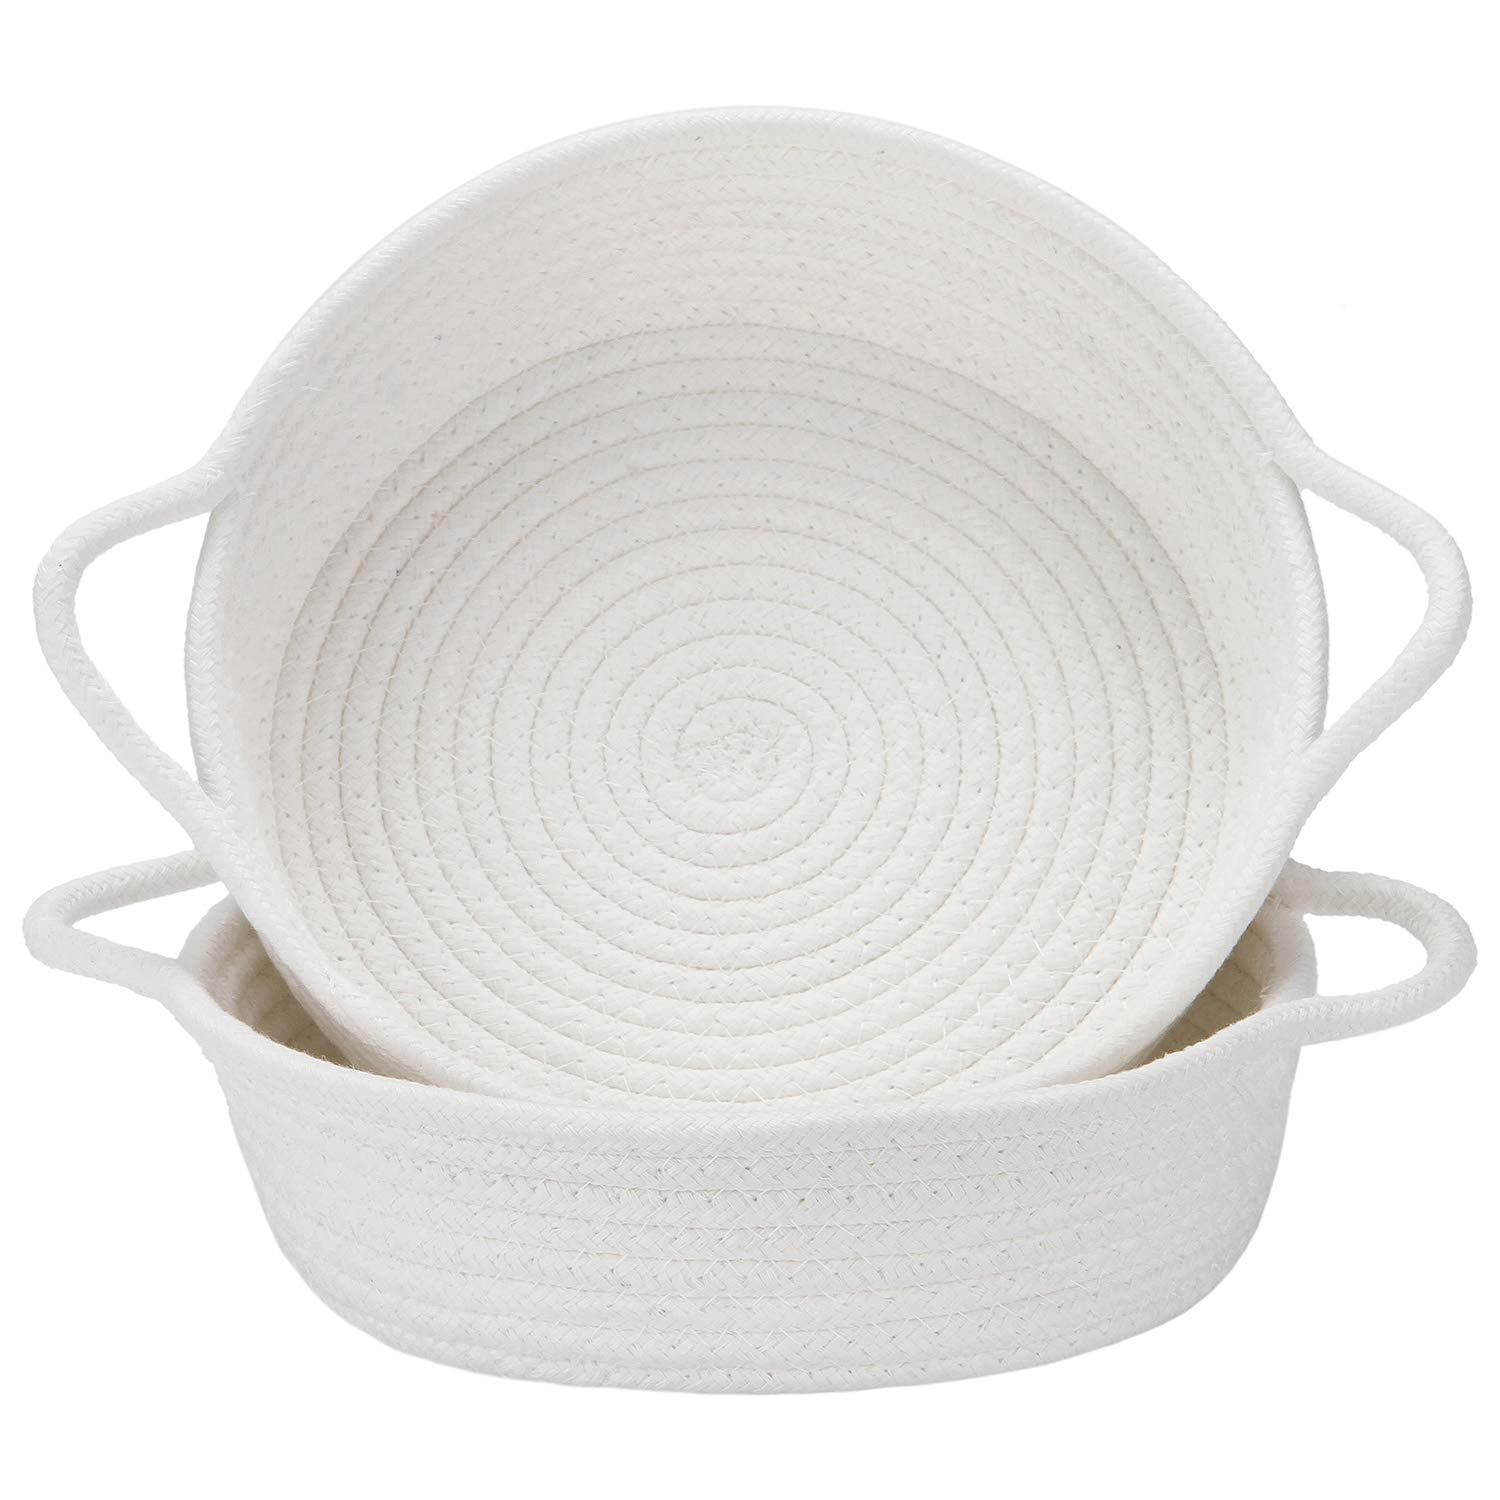 Sea Team 2-Pack Cotton Rope Baskets, 10 x 3 Inches Small Woven Storage Basket, Fabric Tray, Bowl, Round Open Dish for Fruits, Jewelry, Keys, Sewing Kits (White)